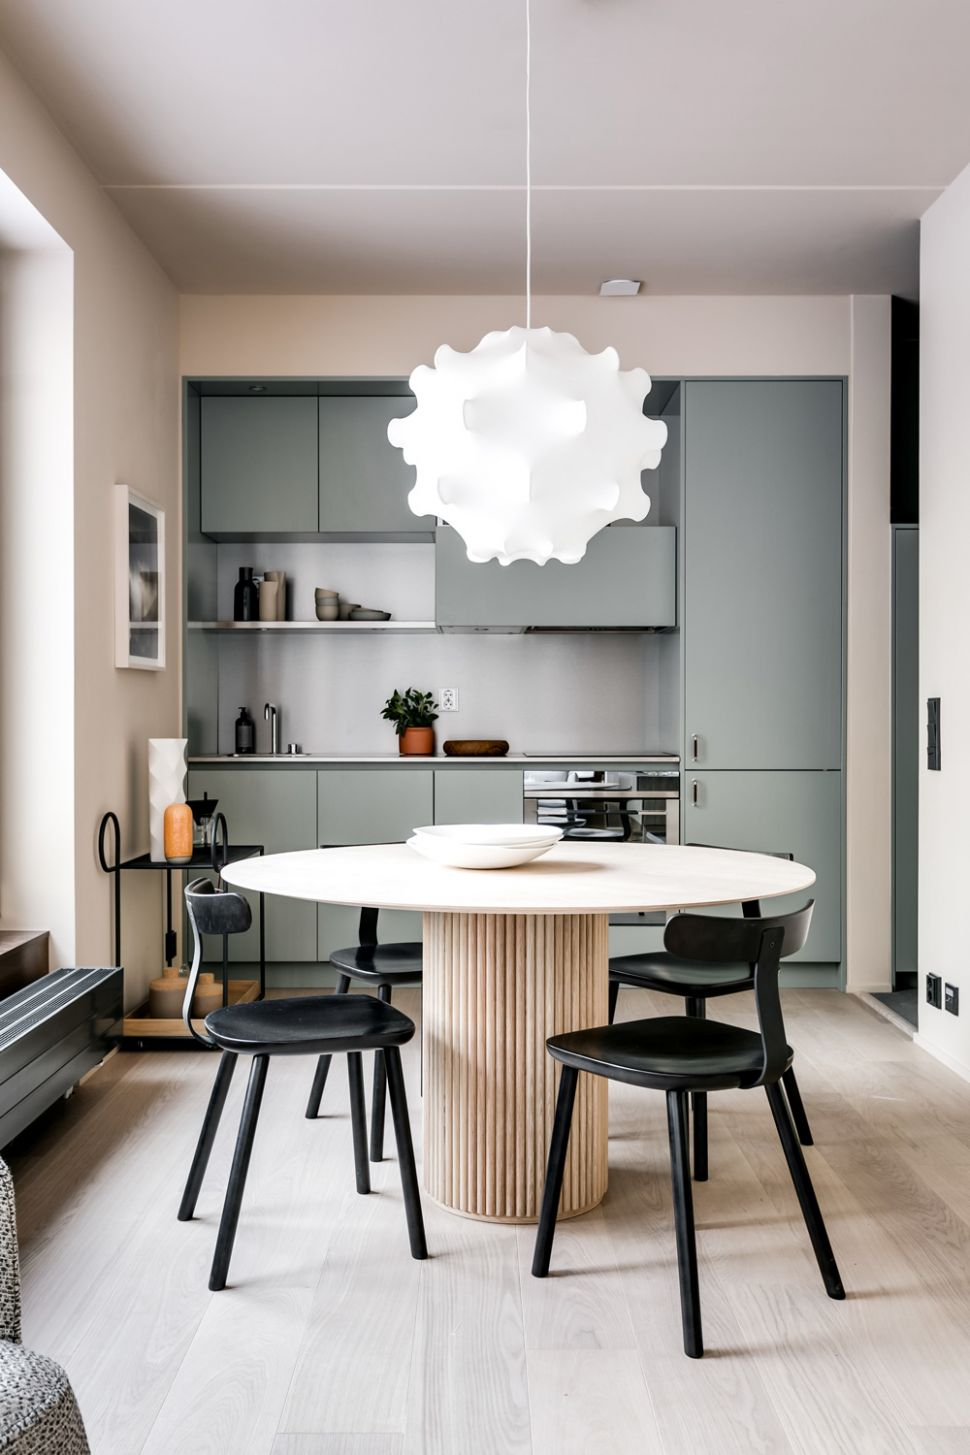 Step Inside a Stylish Urban Apartment by Note Design Studio ..